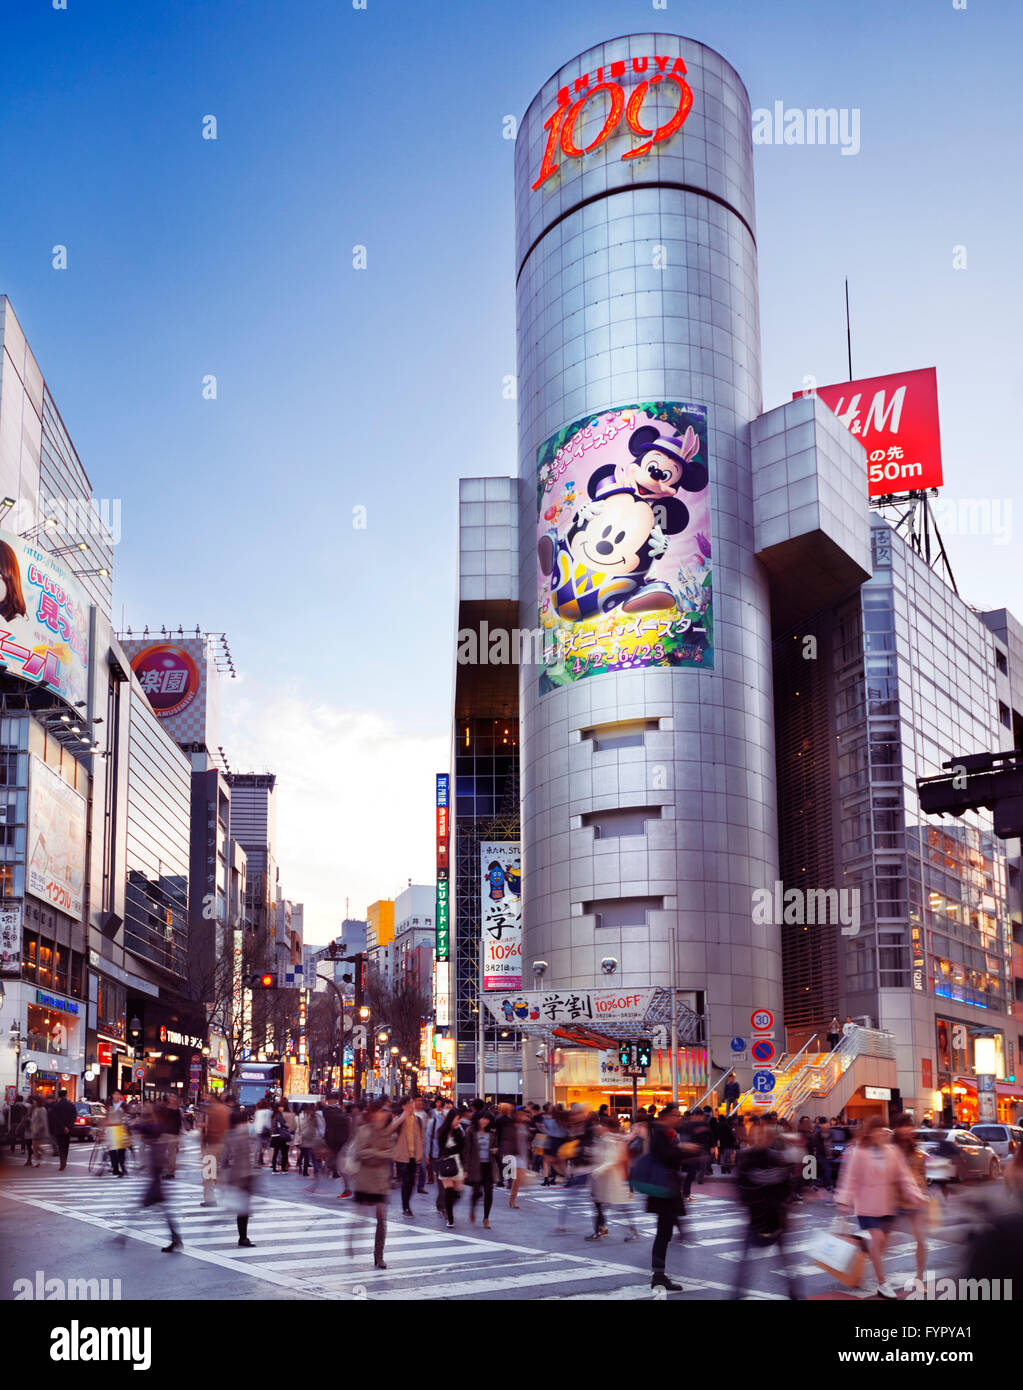 People on busy street in front of Shibuya 109 store, Shibuya, Tokyo, Japan - Stock Image